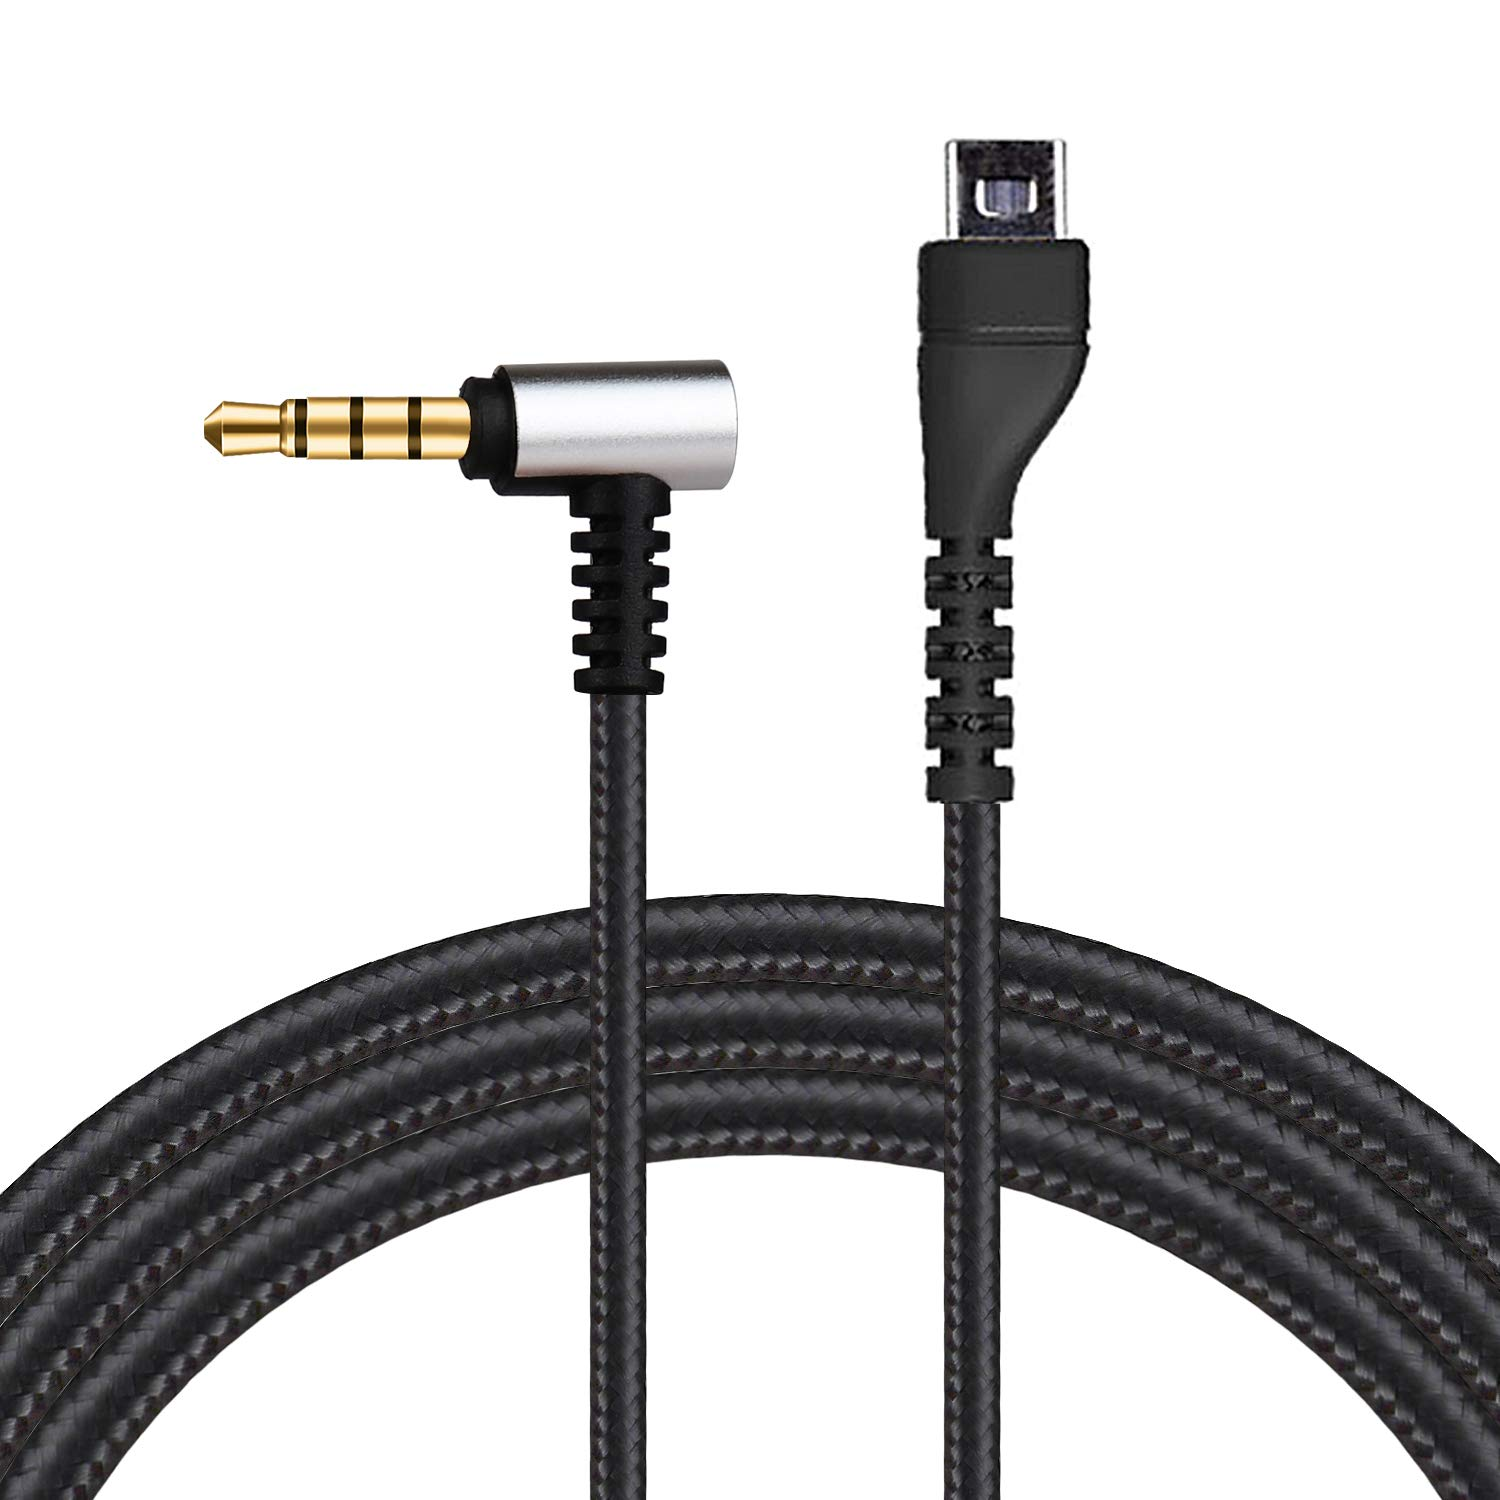 LecLooc Replacement Cable Compatible with Arctis 3, Arctis 5, Arctis 7, Arctis Pro Wireless, Arctis Pro Gaming Headset 6.5 Feet